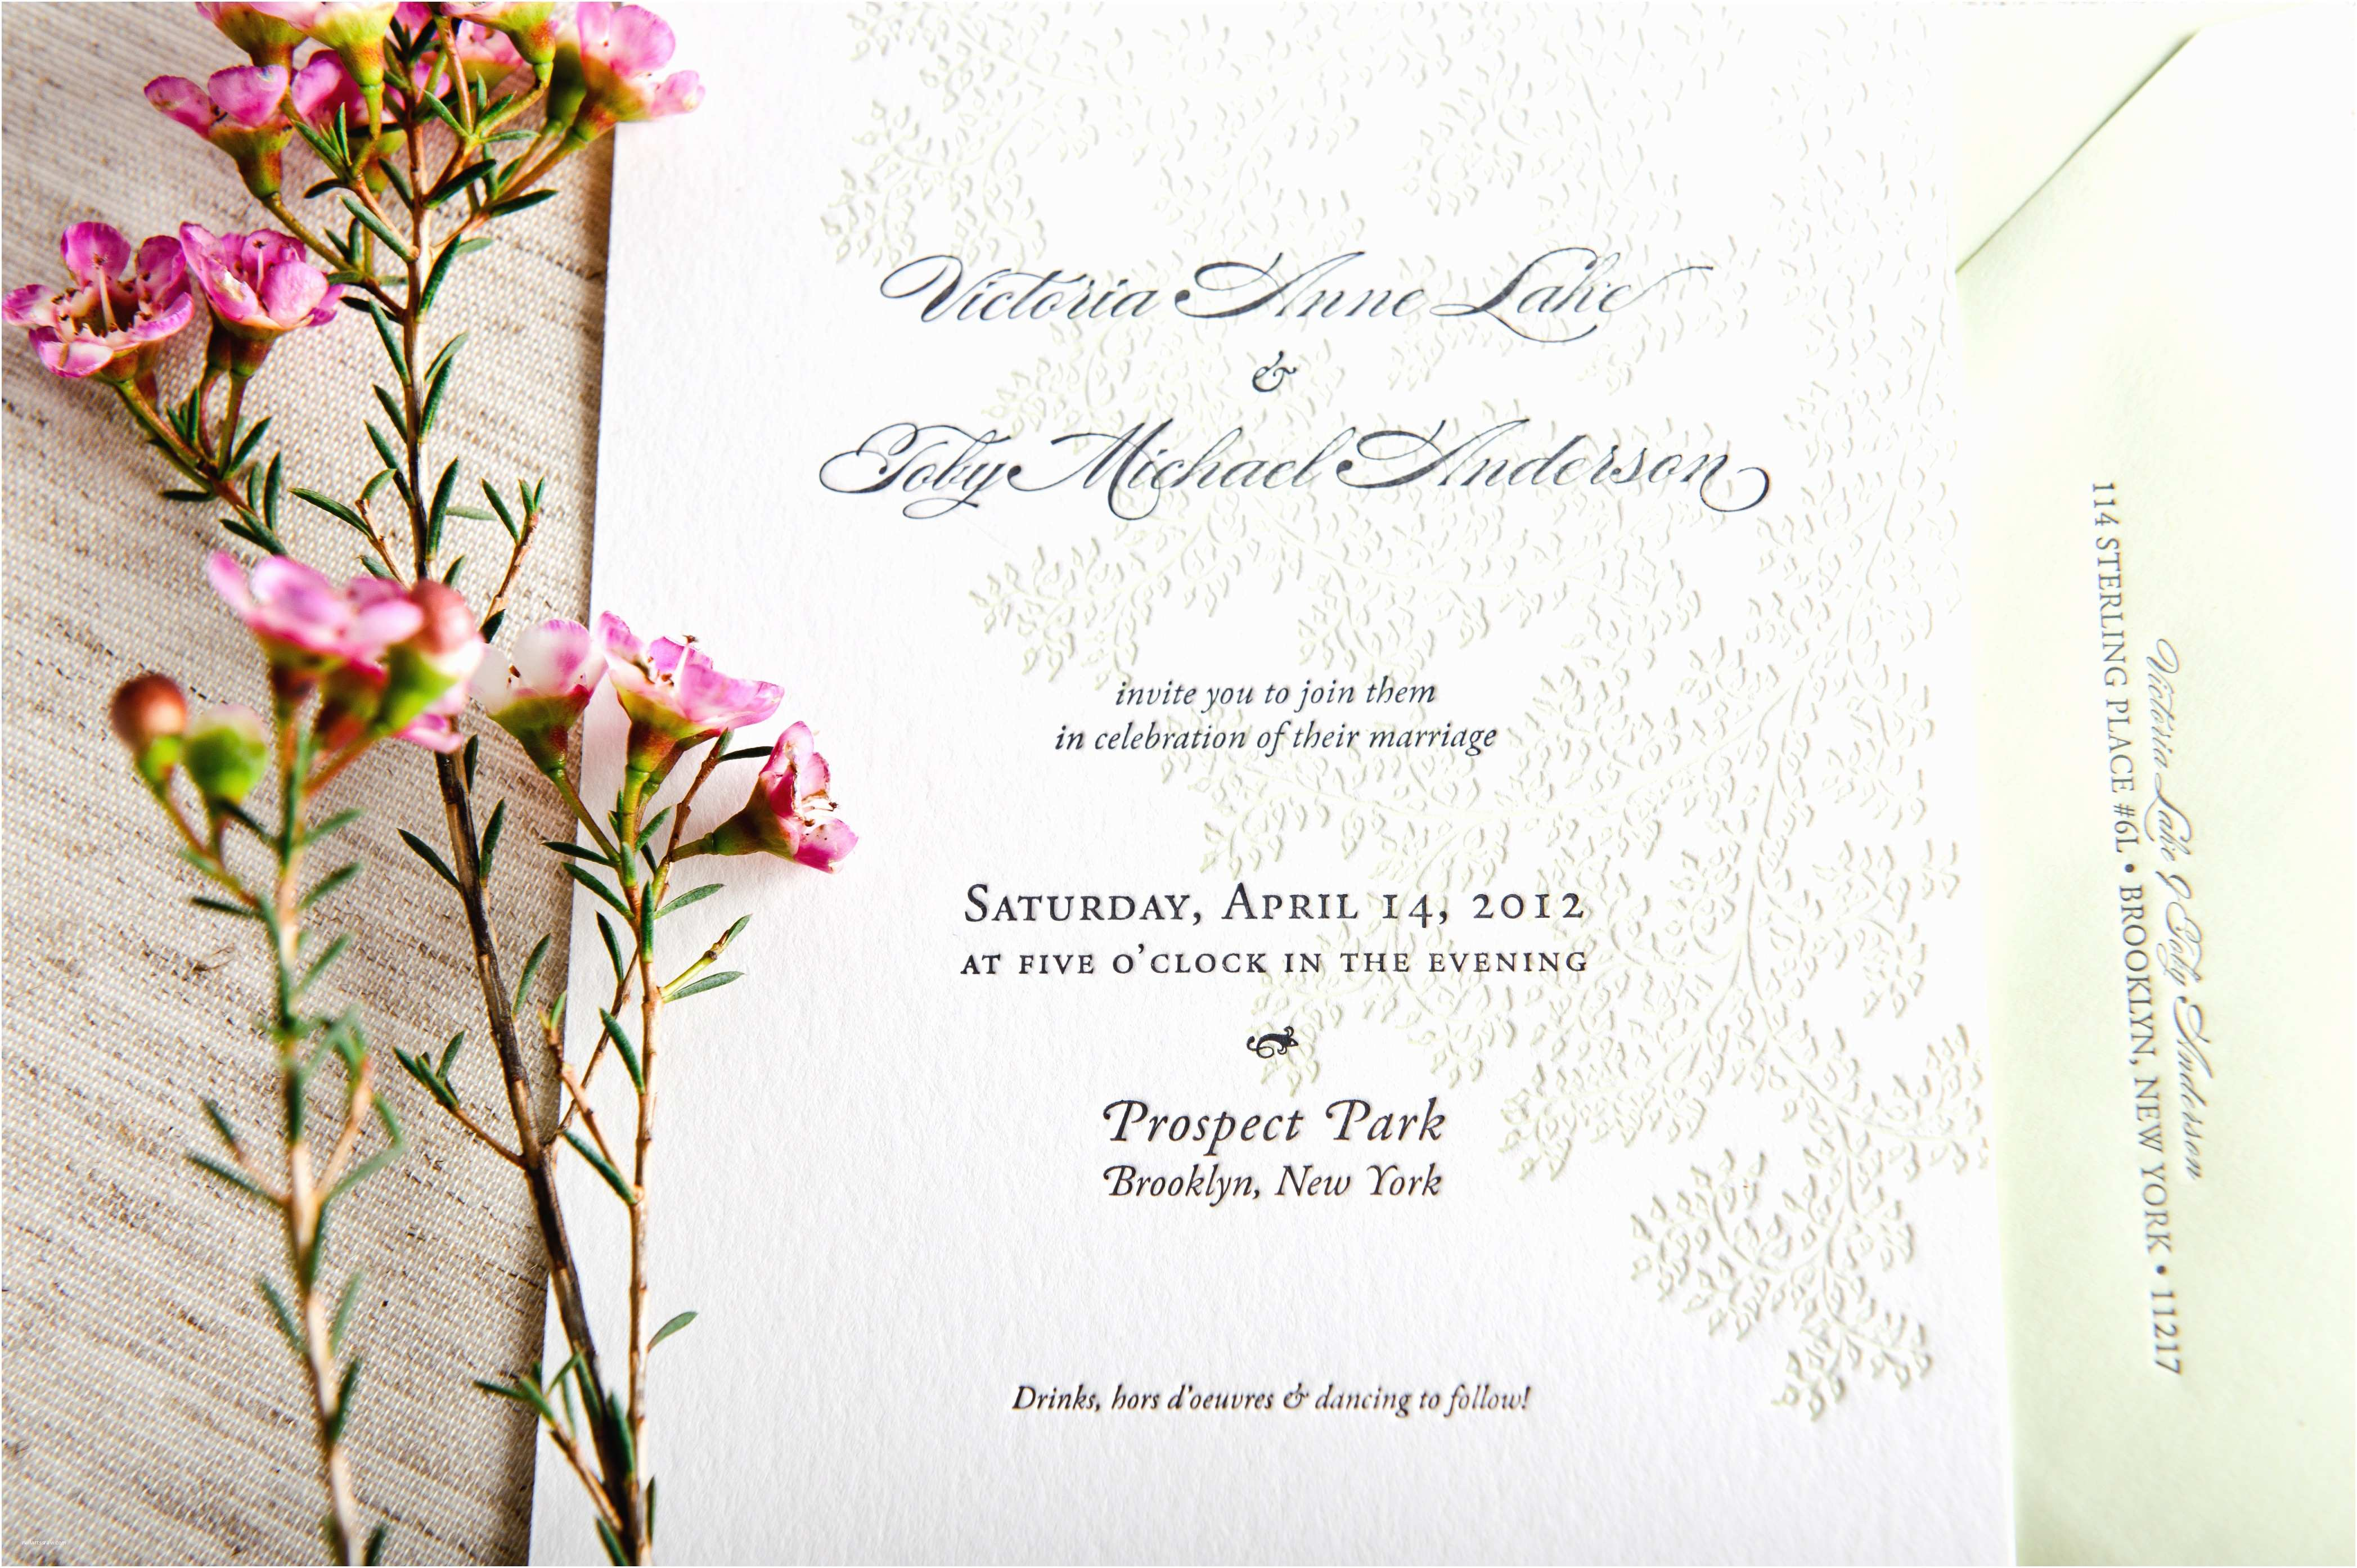 wedding invitation templates in marathi